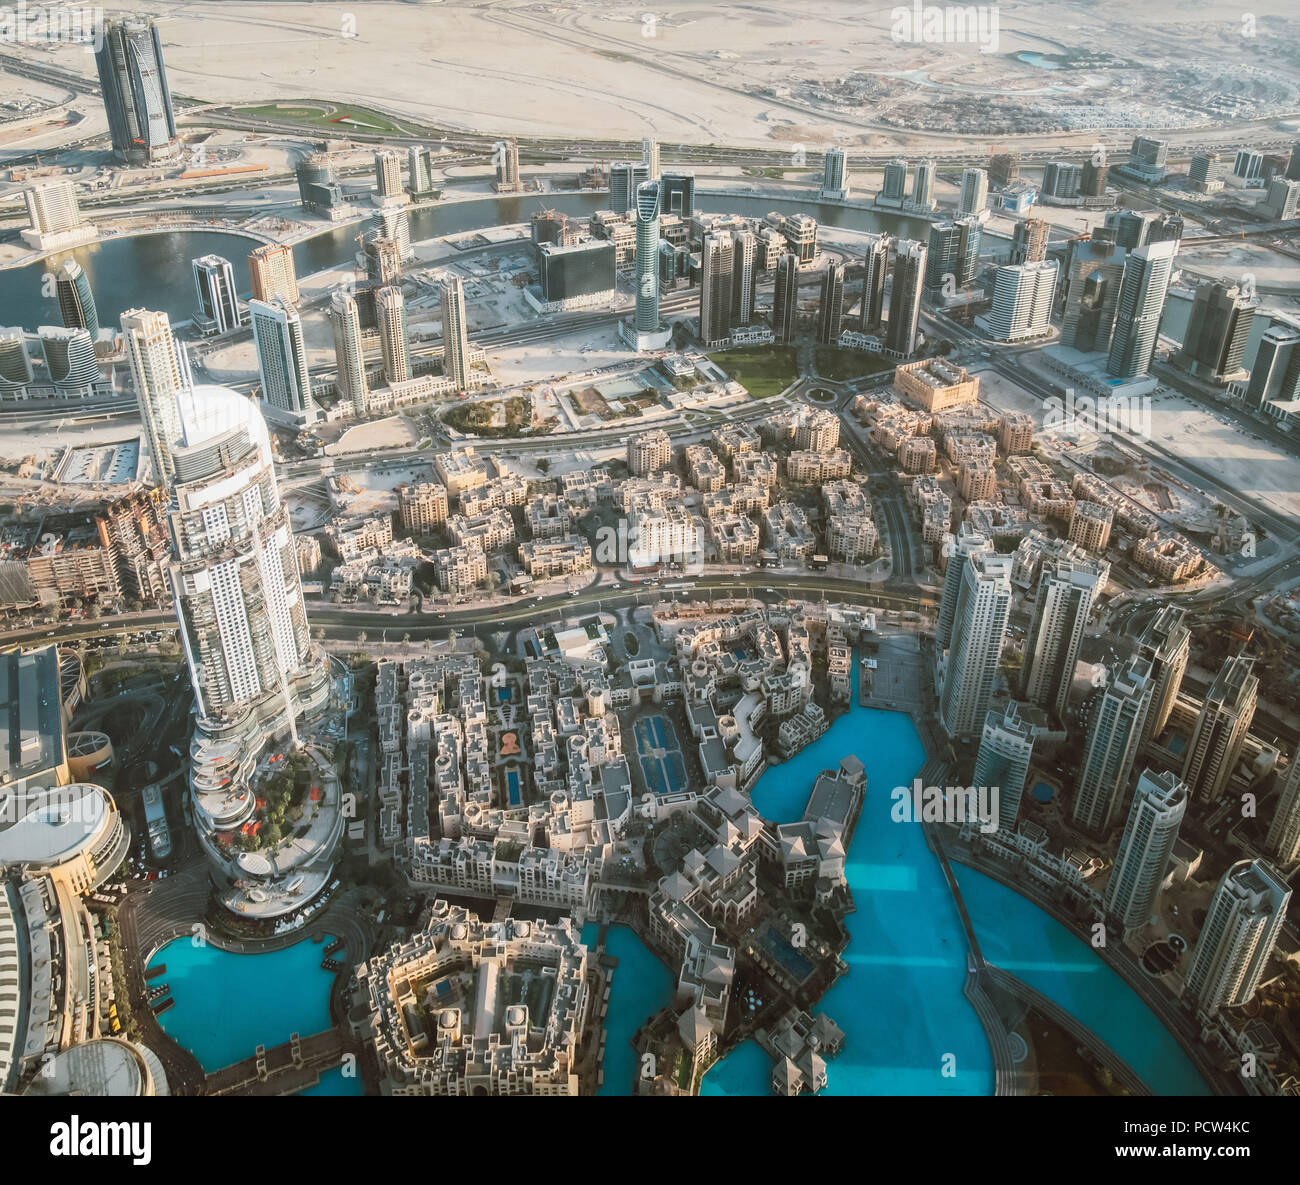 Beautiful view from the top of dubai skyline - united arab emirates - Stock Image